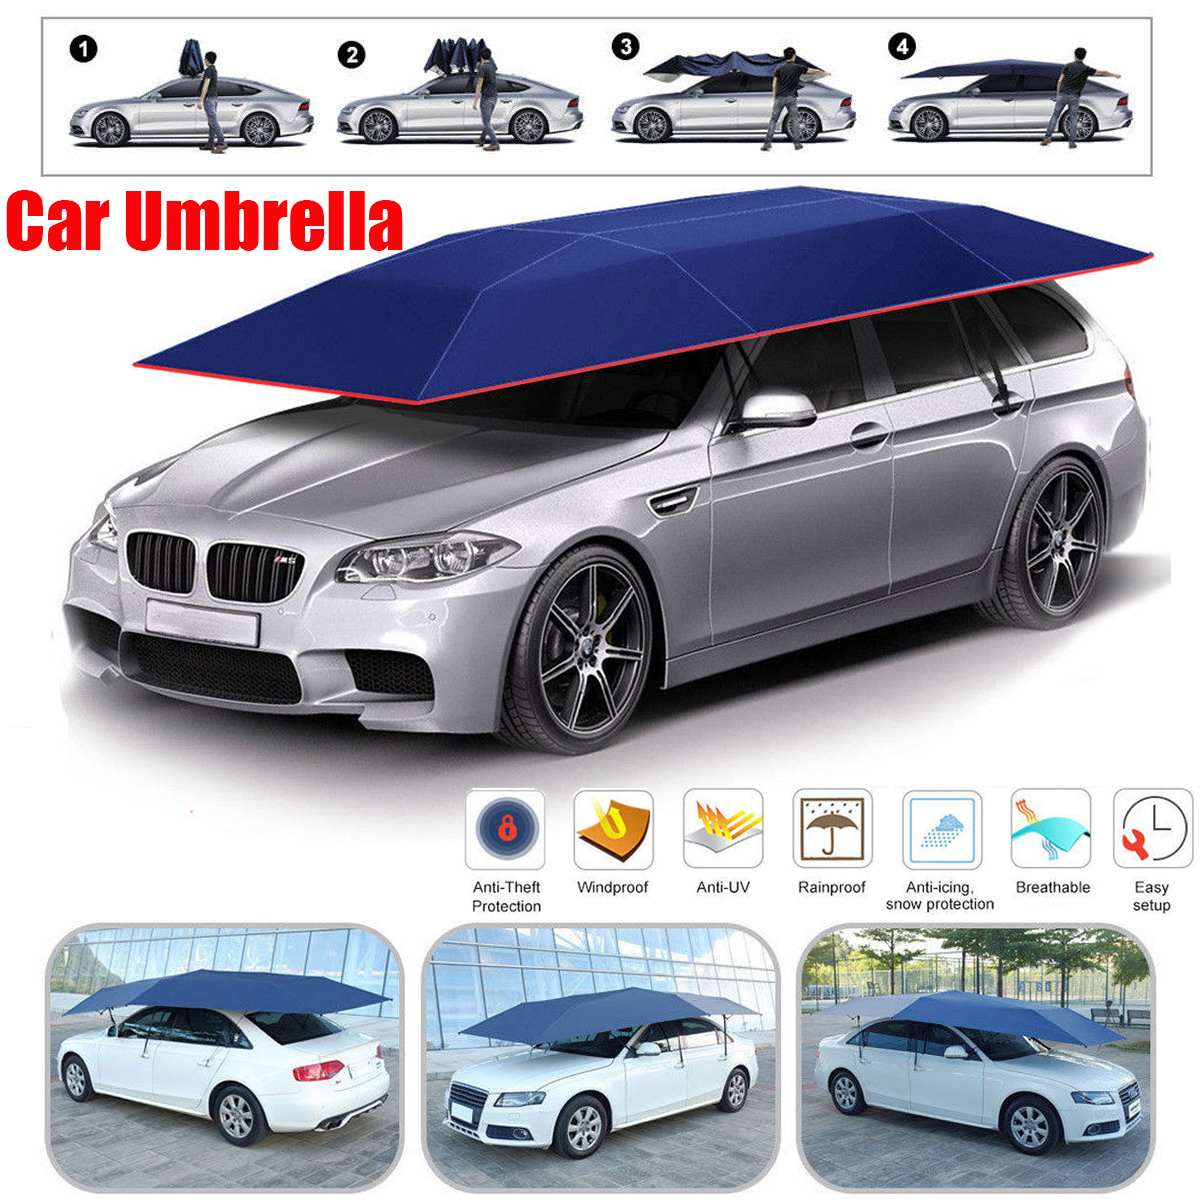 Semi-automatic Outdoor Car Vehicle Tent Umbrella Sunshade Roof Cover Anti-UV Kit Car Umbrella Sun Shade Car Umbrella